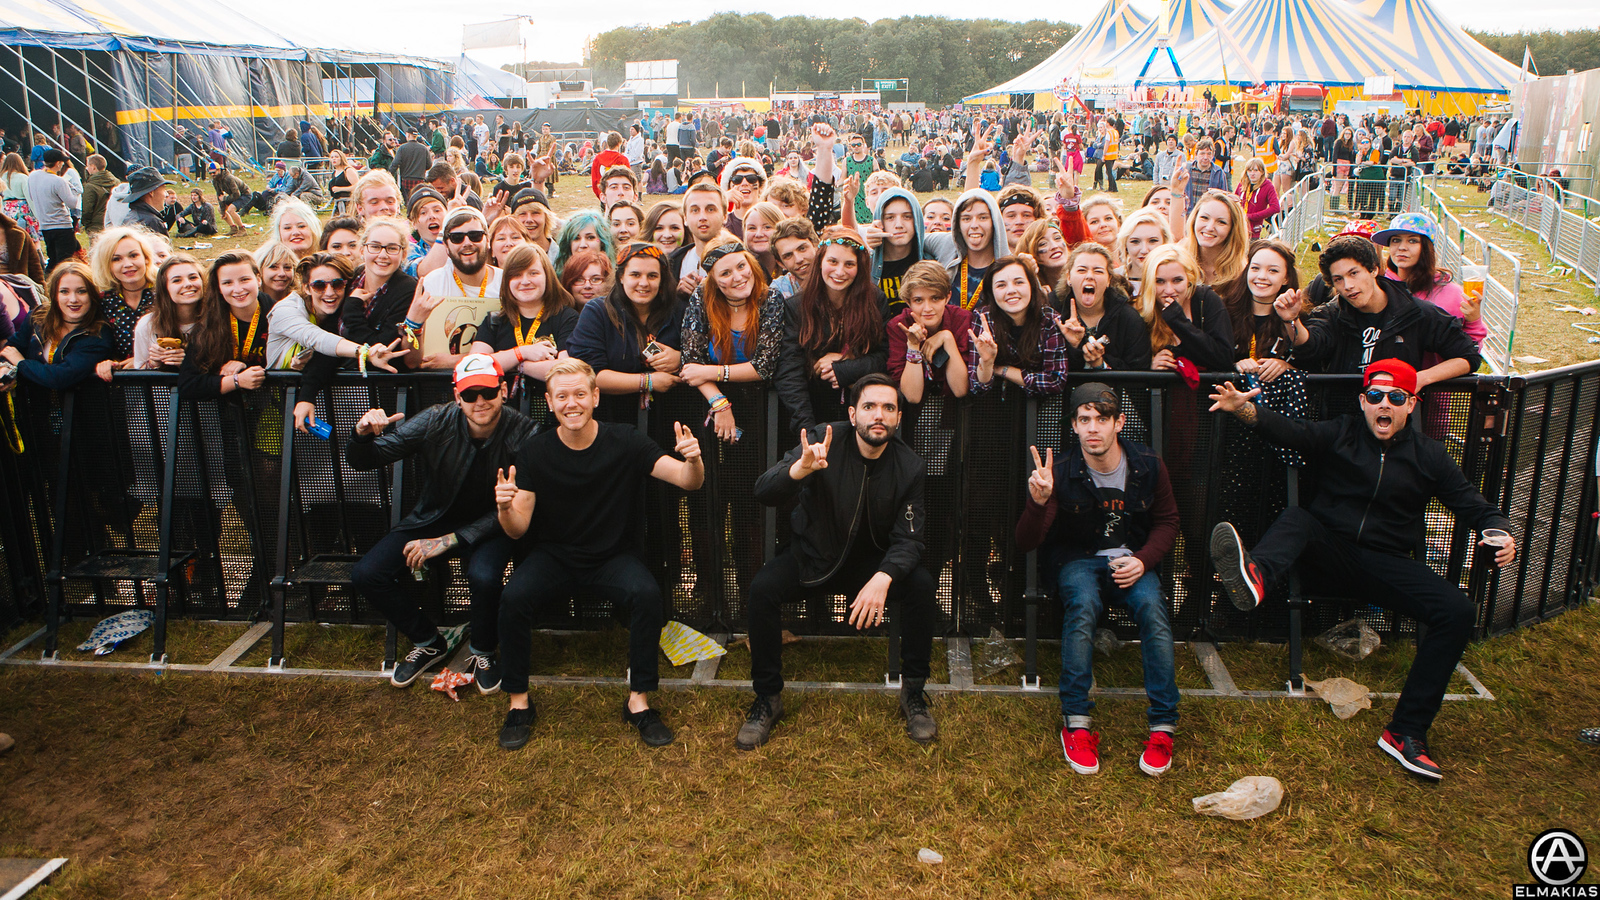 A Day To Remember with fans at Leeds Festivals